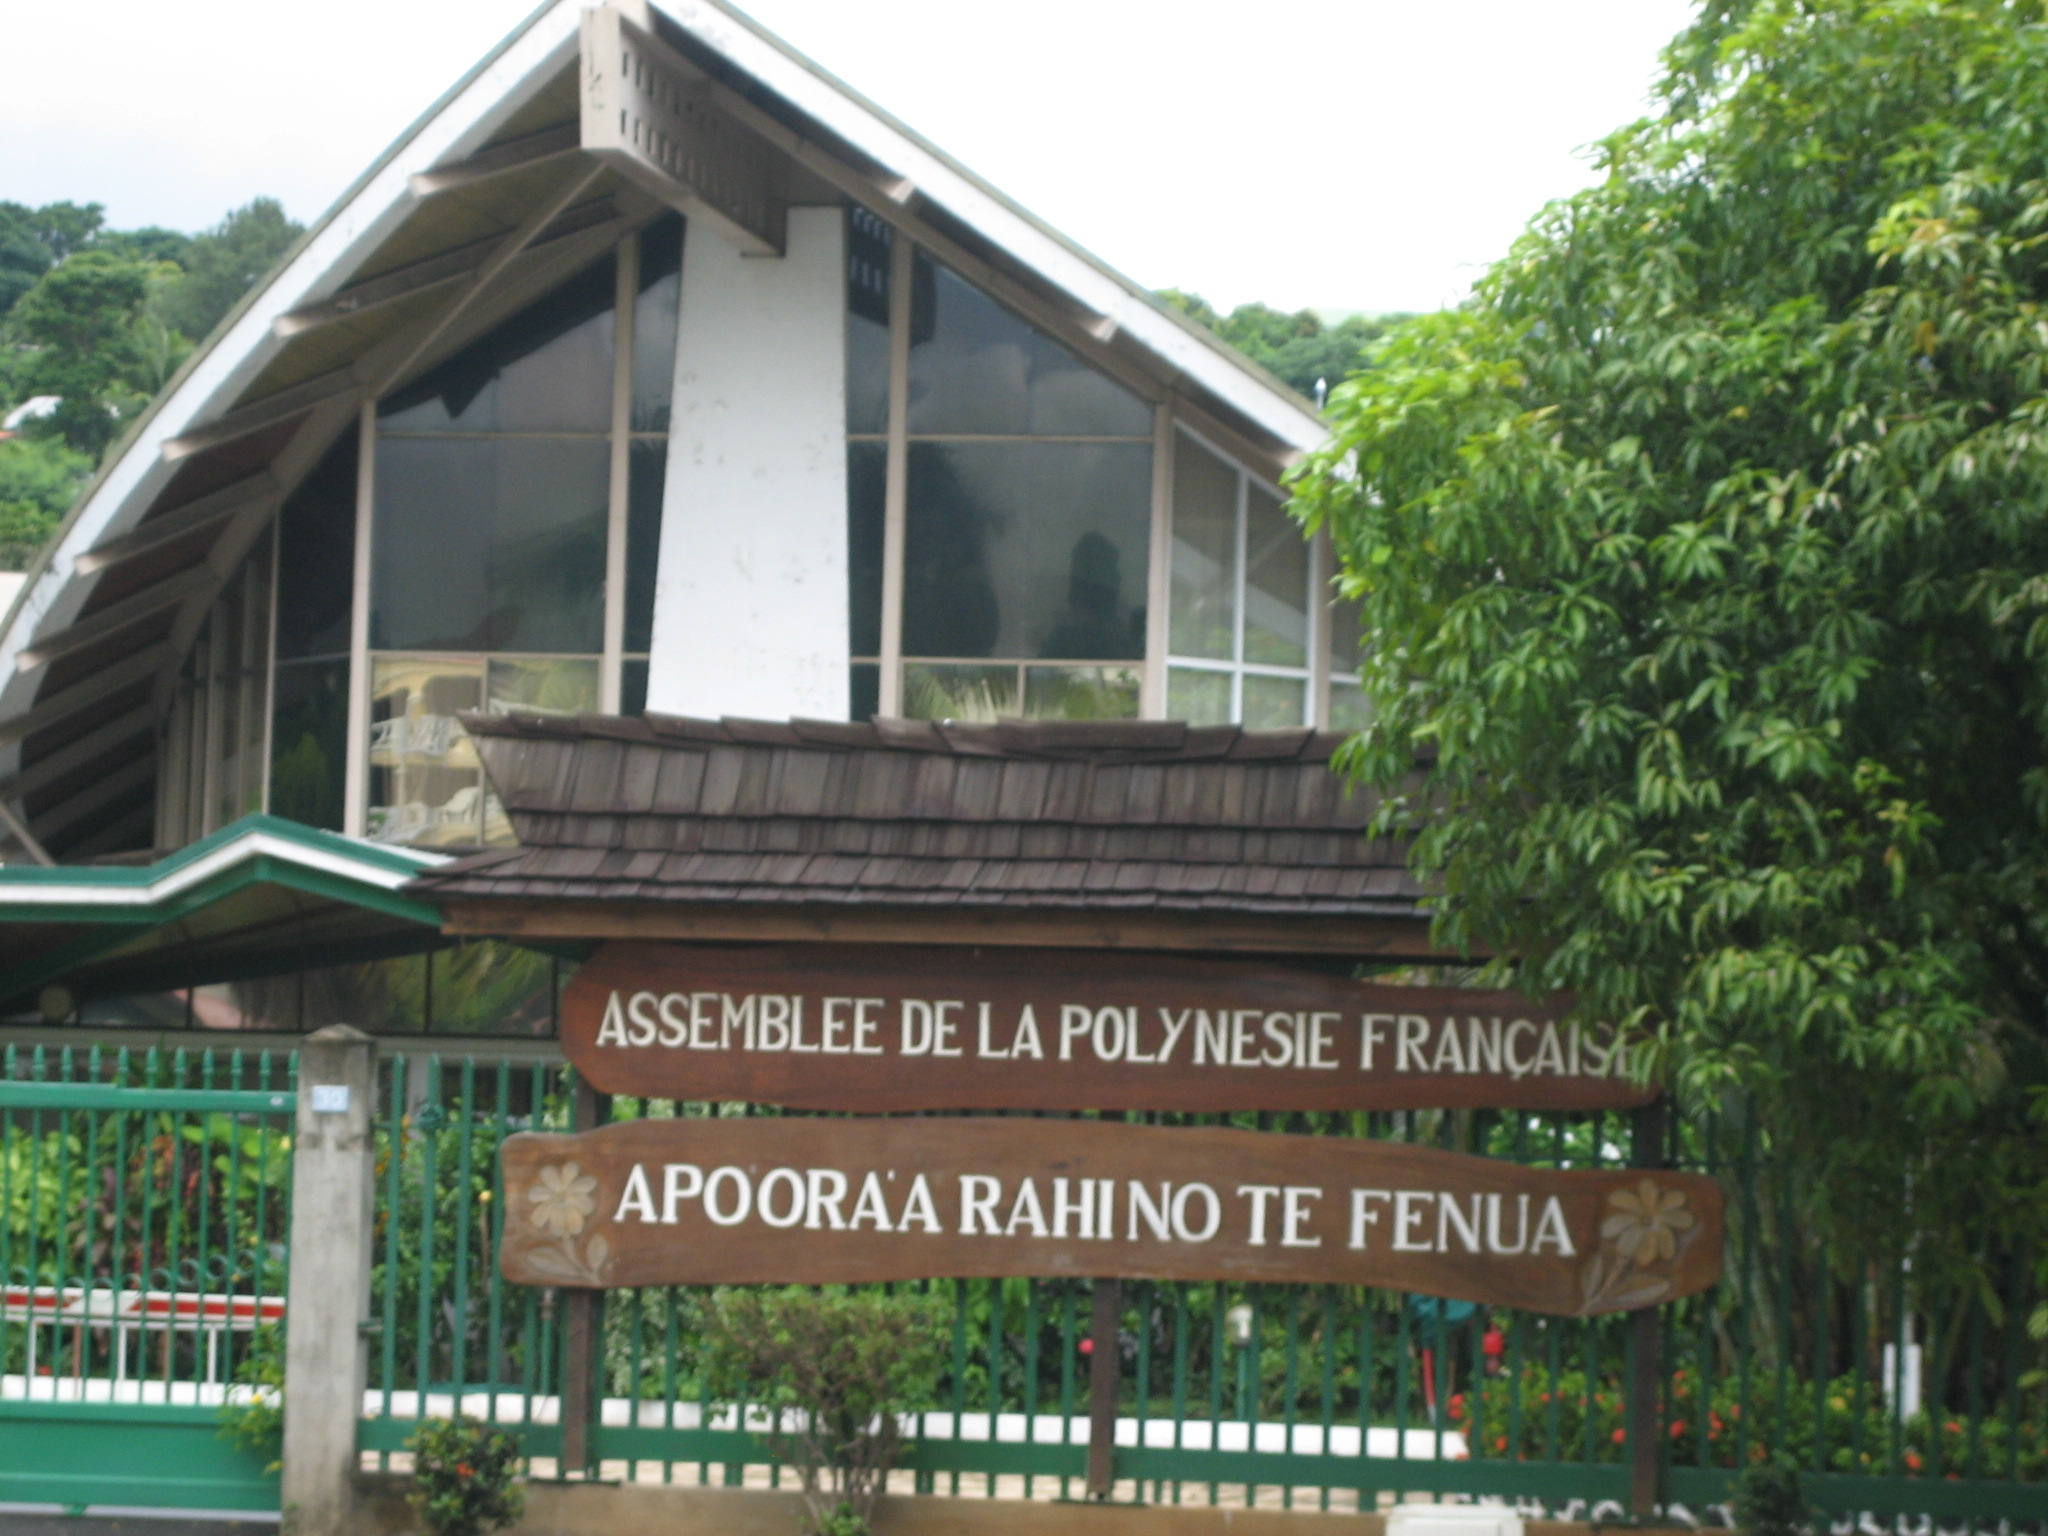 Assembly of French Polynesia, the unicameral legislature of French Polynesia, located at the Place Tarahoi in Papeete, Photo taken on February 24, 2007.